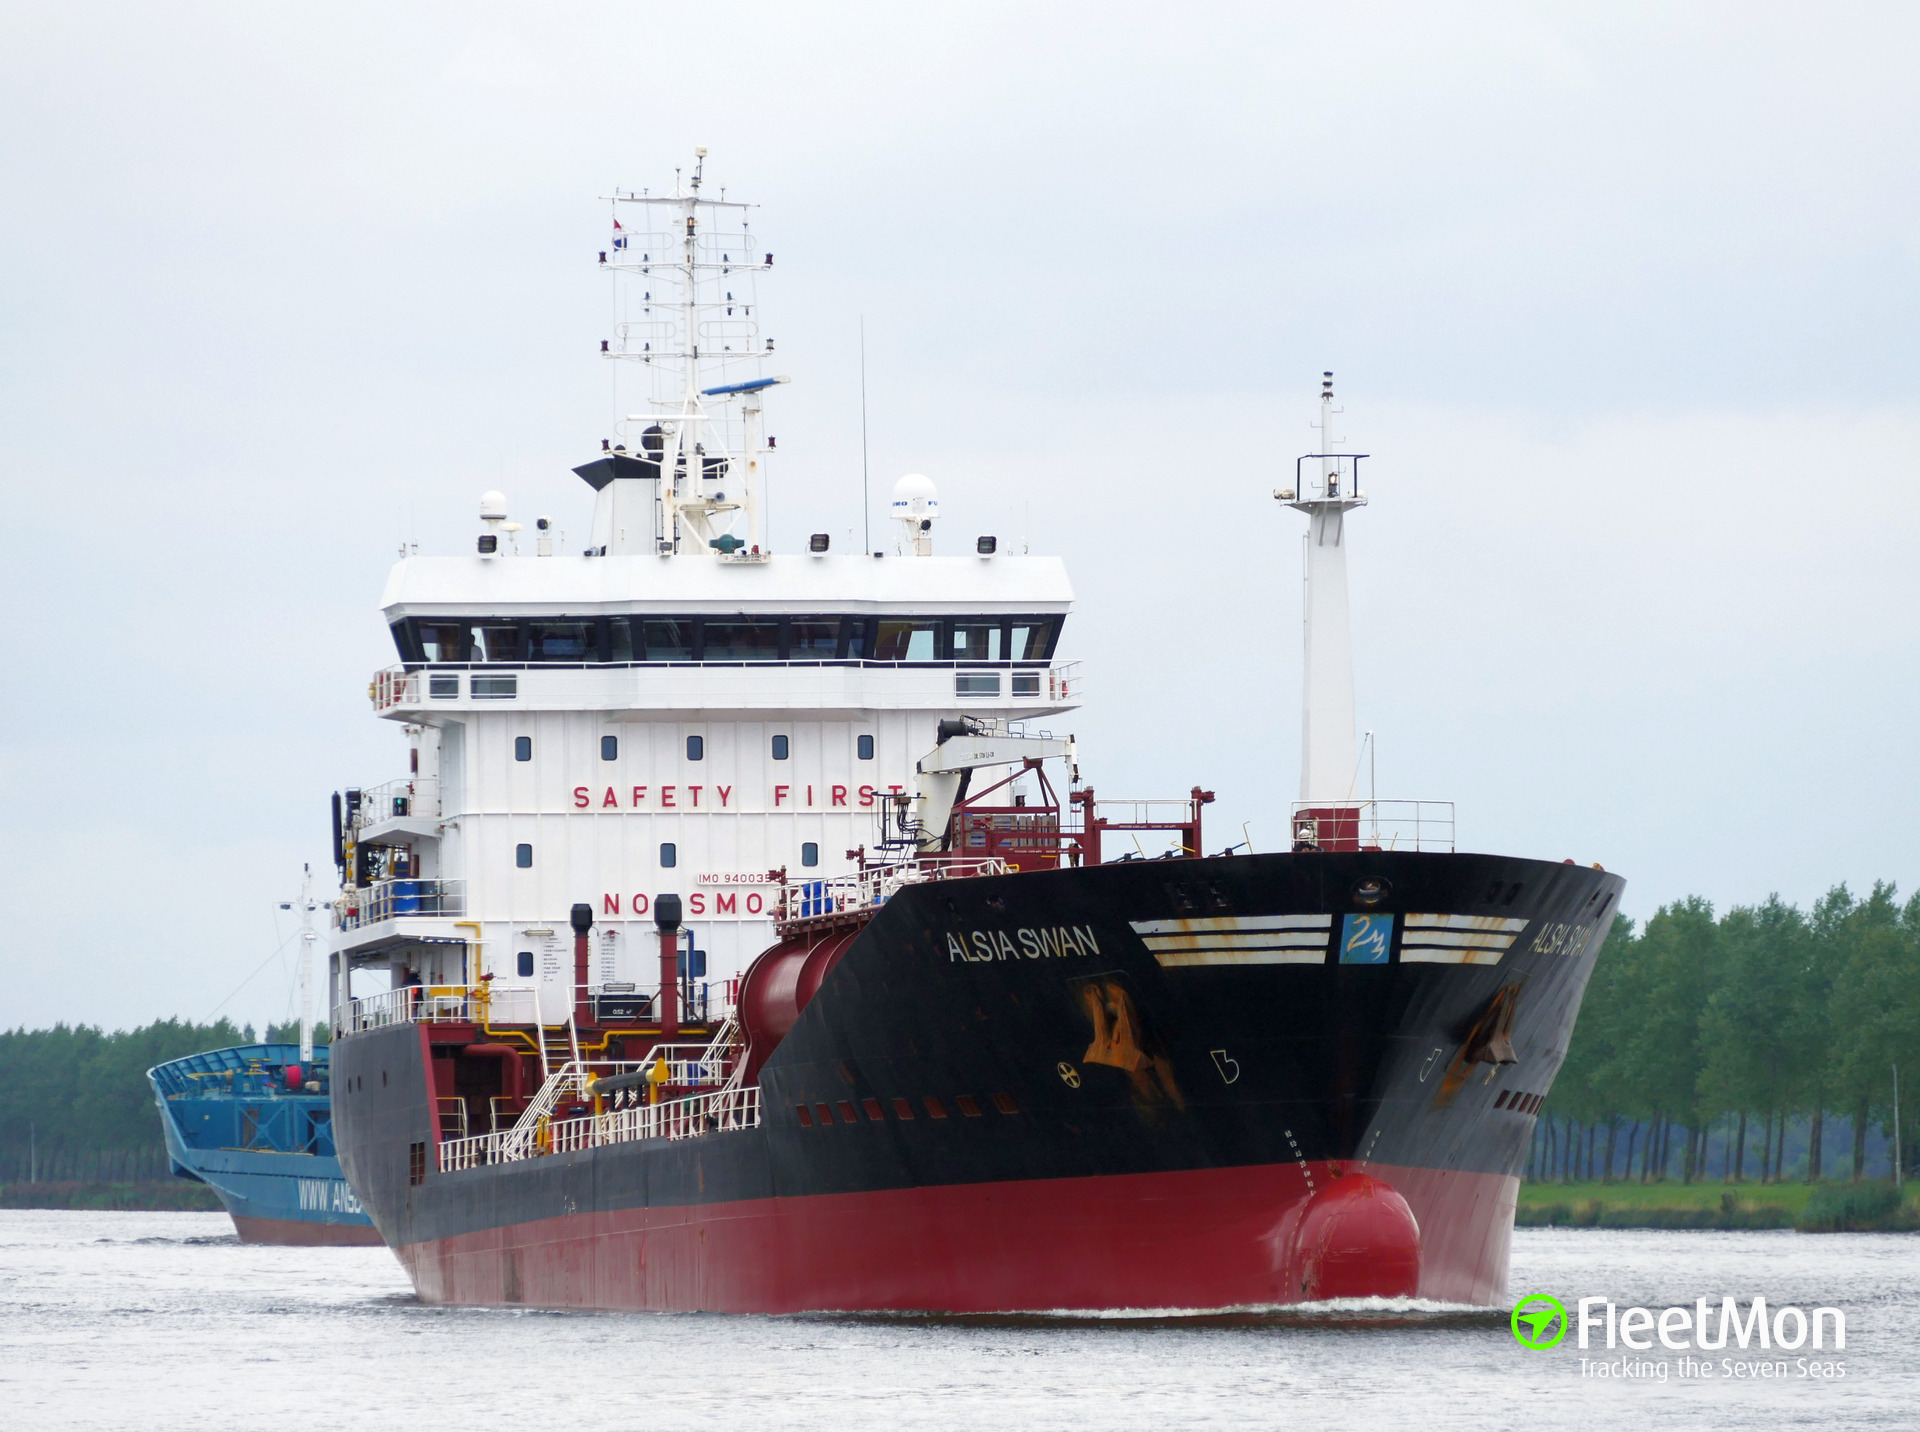 Product tanker disabled and adrift in North Atlantic